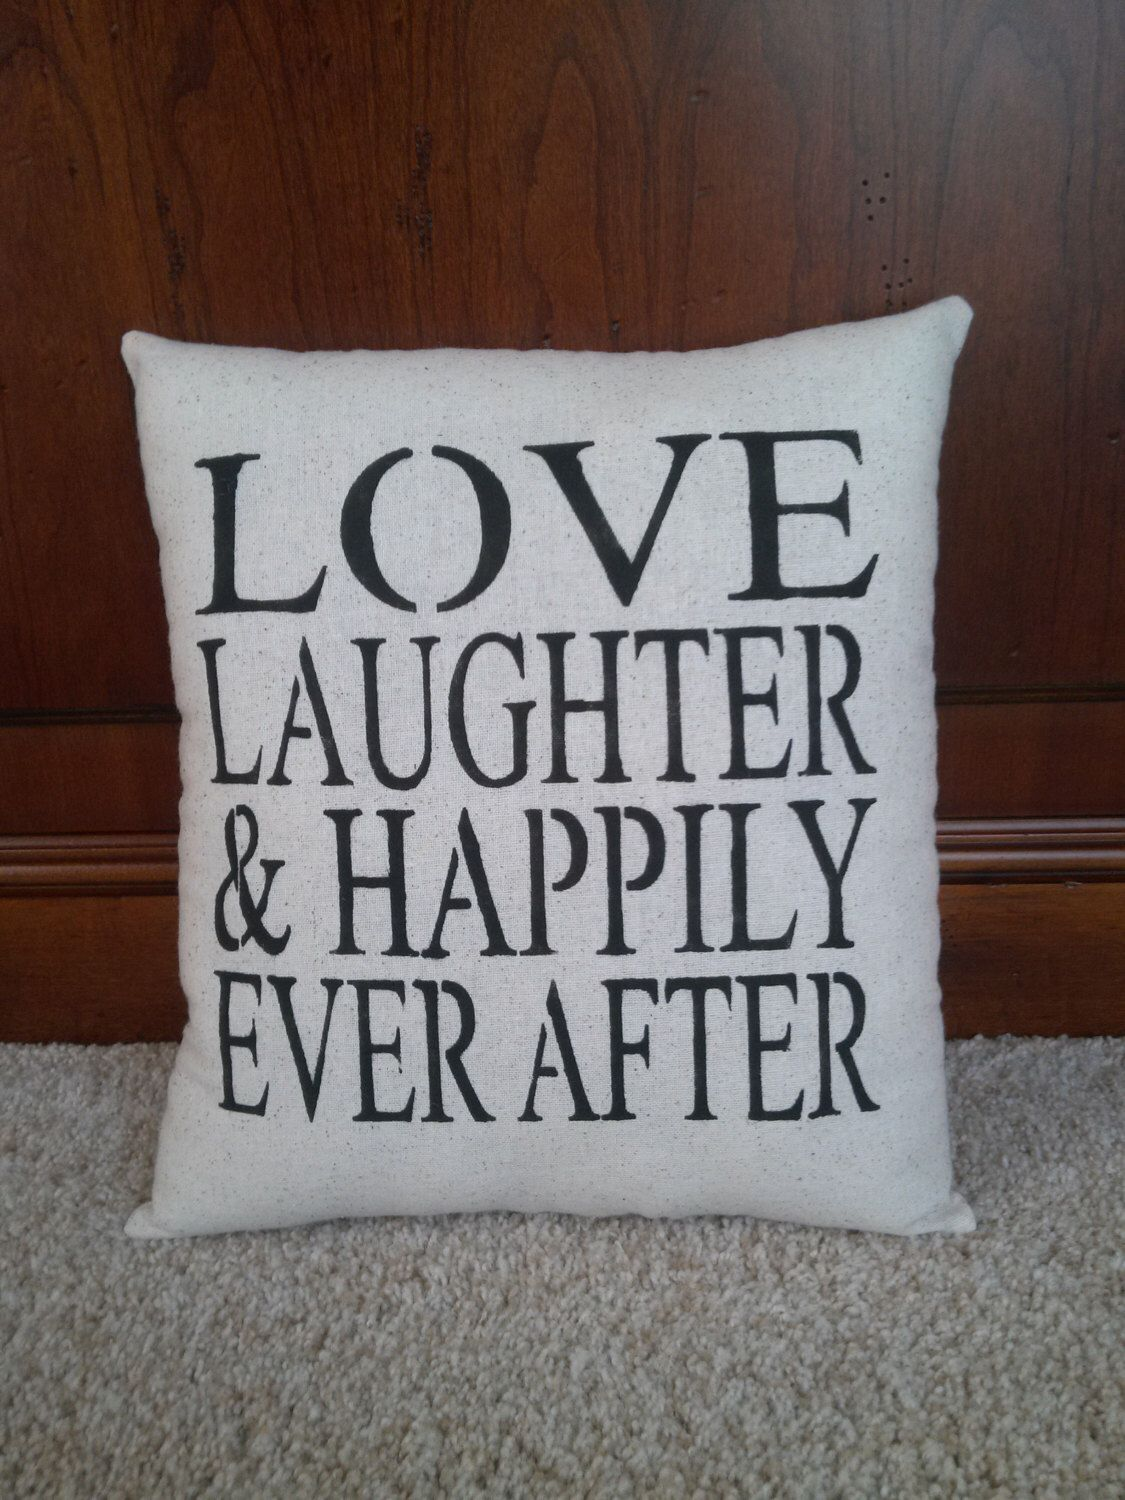 happily ever after pillowlove laughter and happily ever after  - happily ever after pillowlove laughter and happily ever after pillow